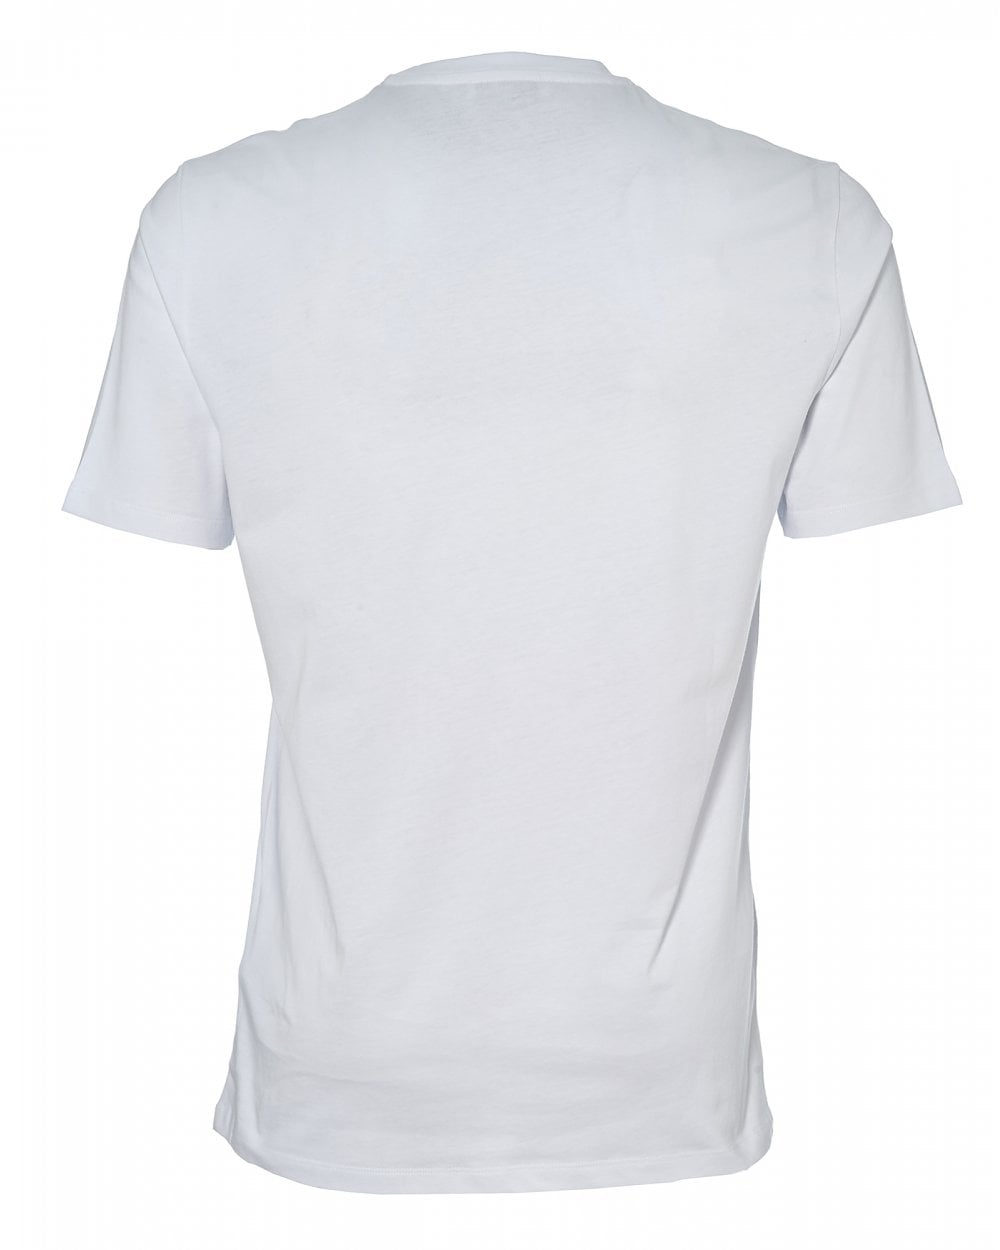 dcaf22617 Versace Collection Mens 1/2 Medusa Logo T-Shirt, White Tee